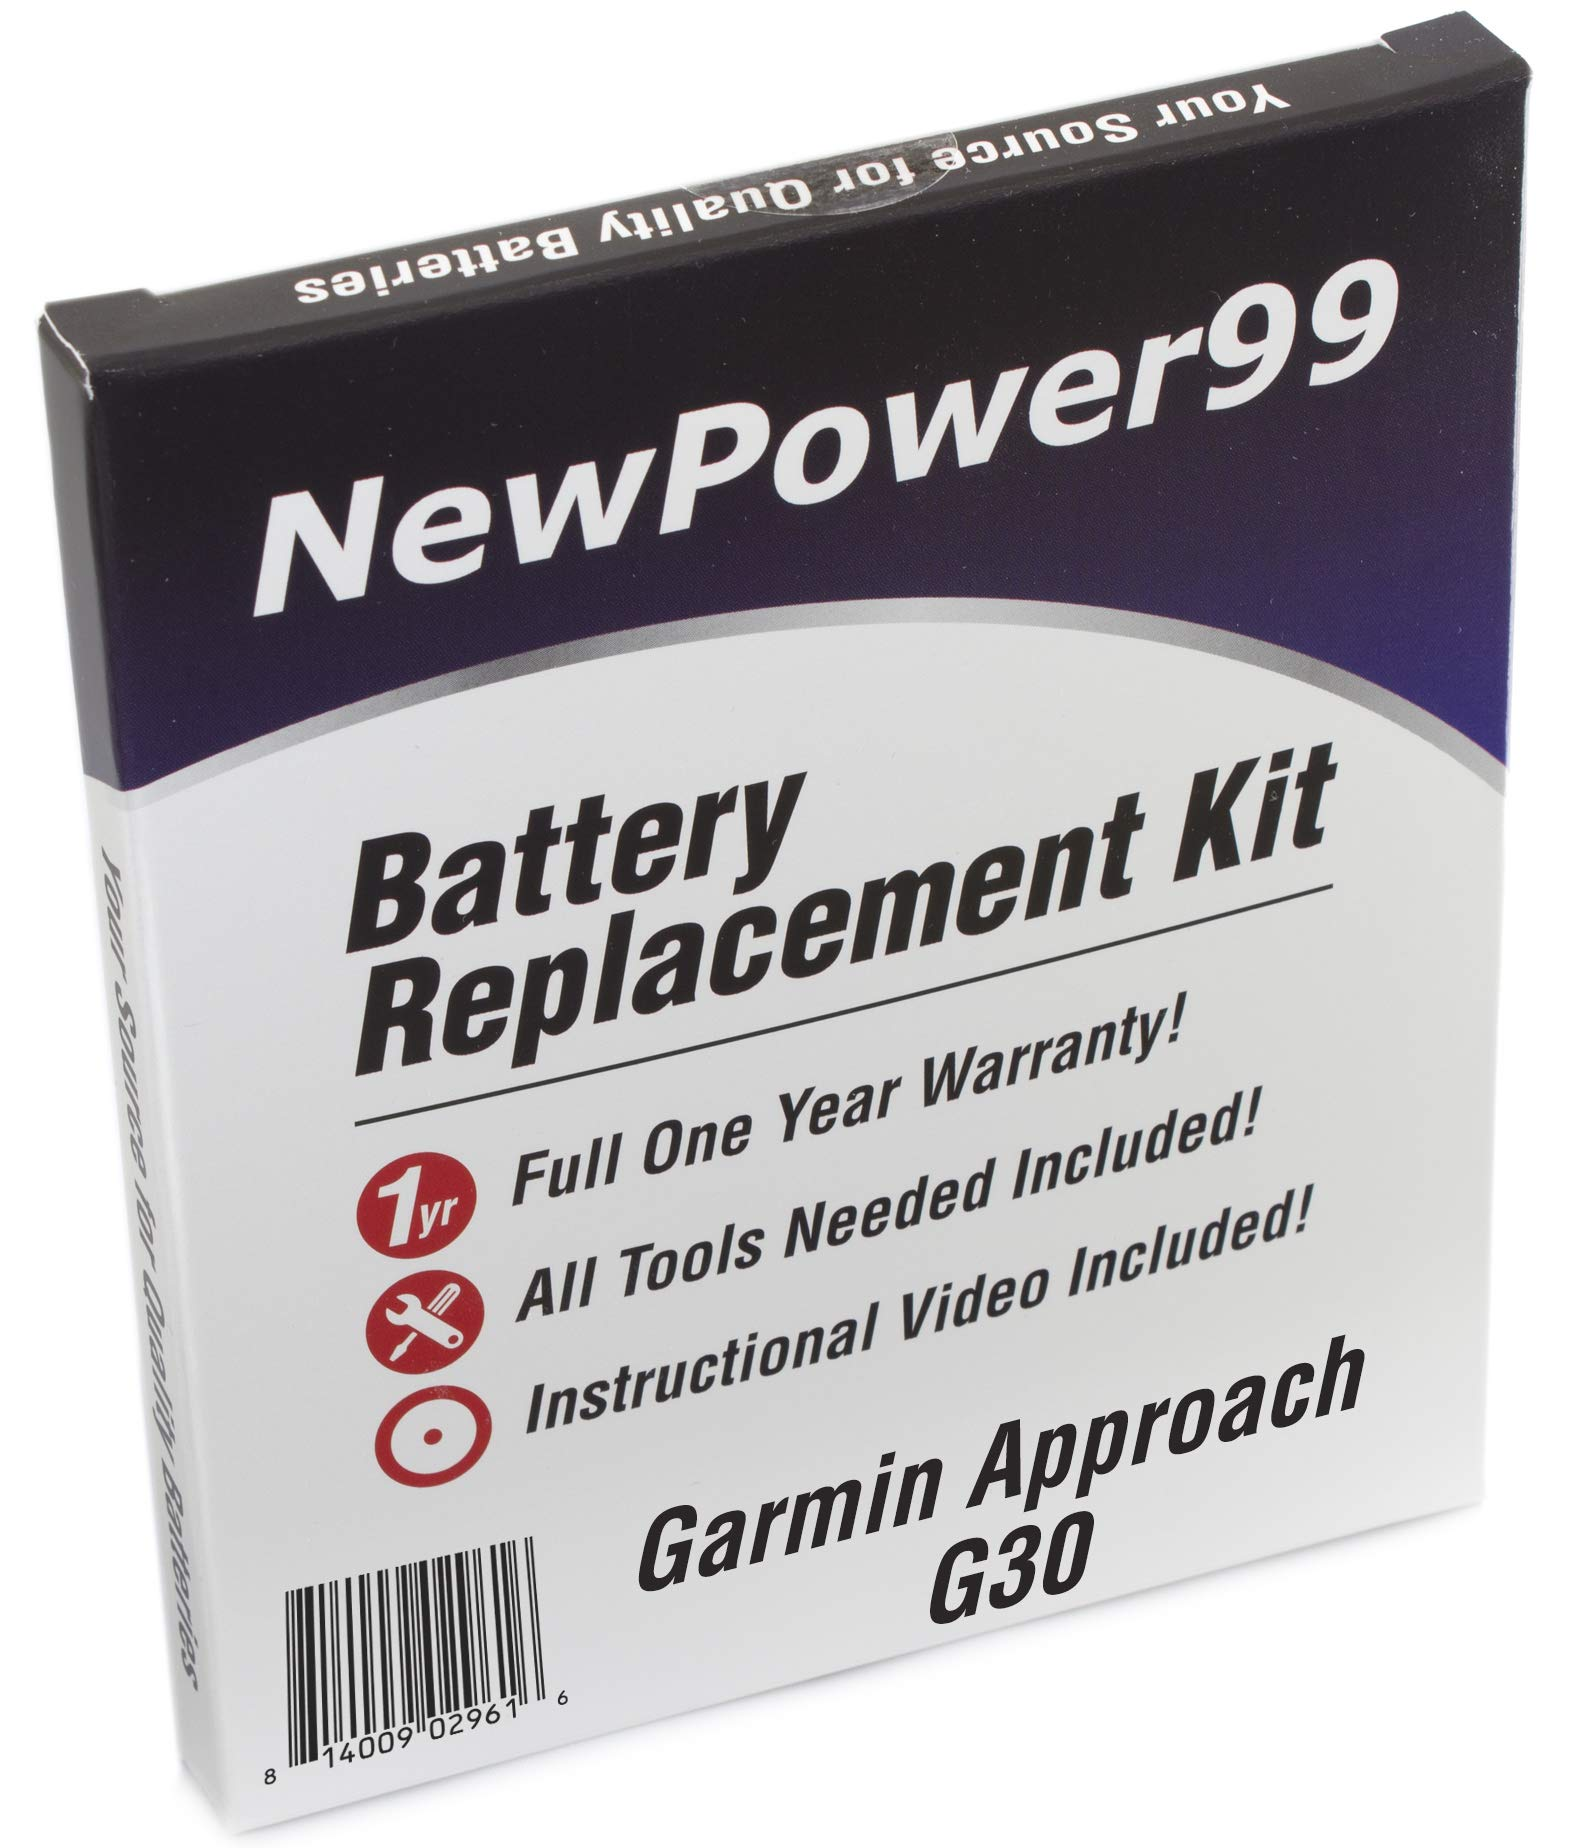 NewPower99 Battery Replacement Kit for Garmin Approach G30 with Installation Video, Tools, and Extended Life Battery by NewPower99